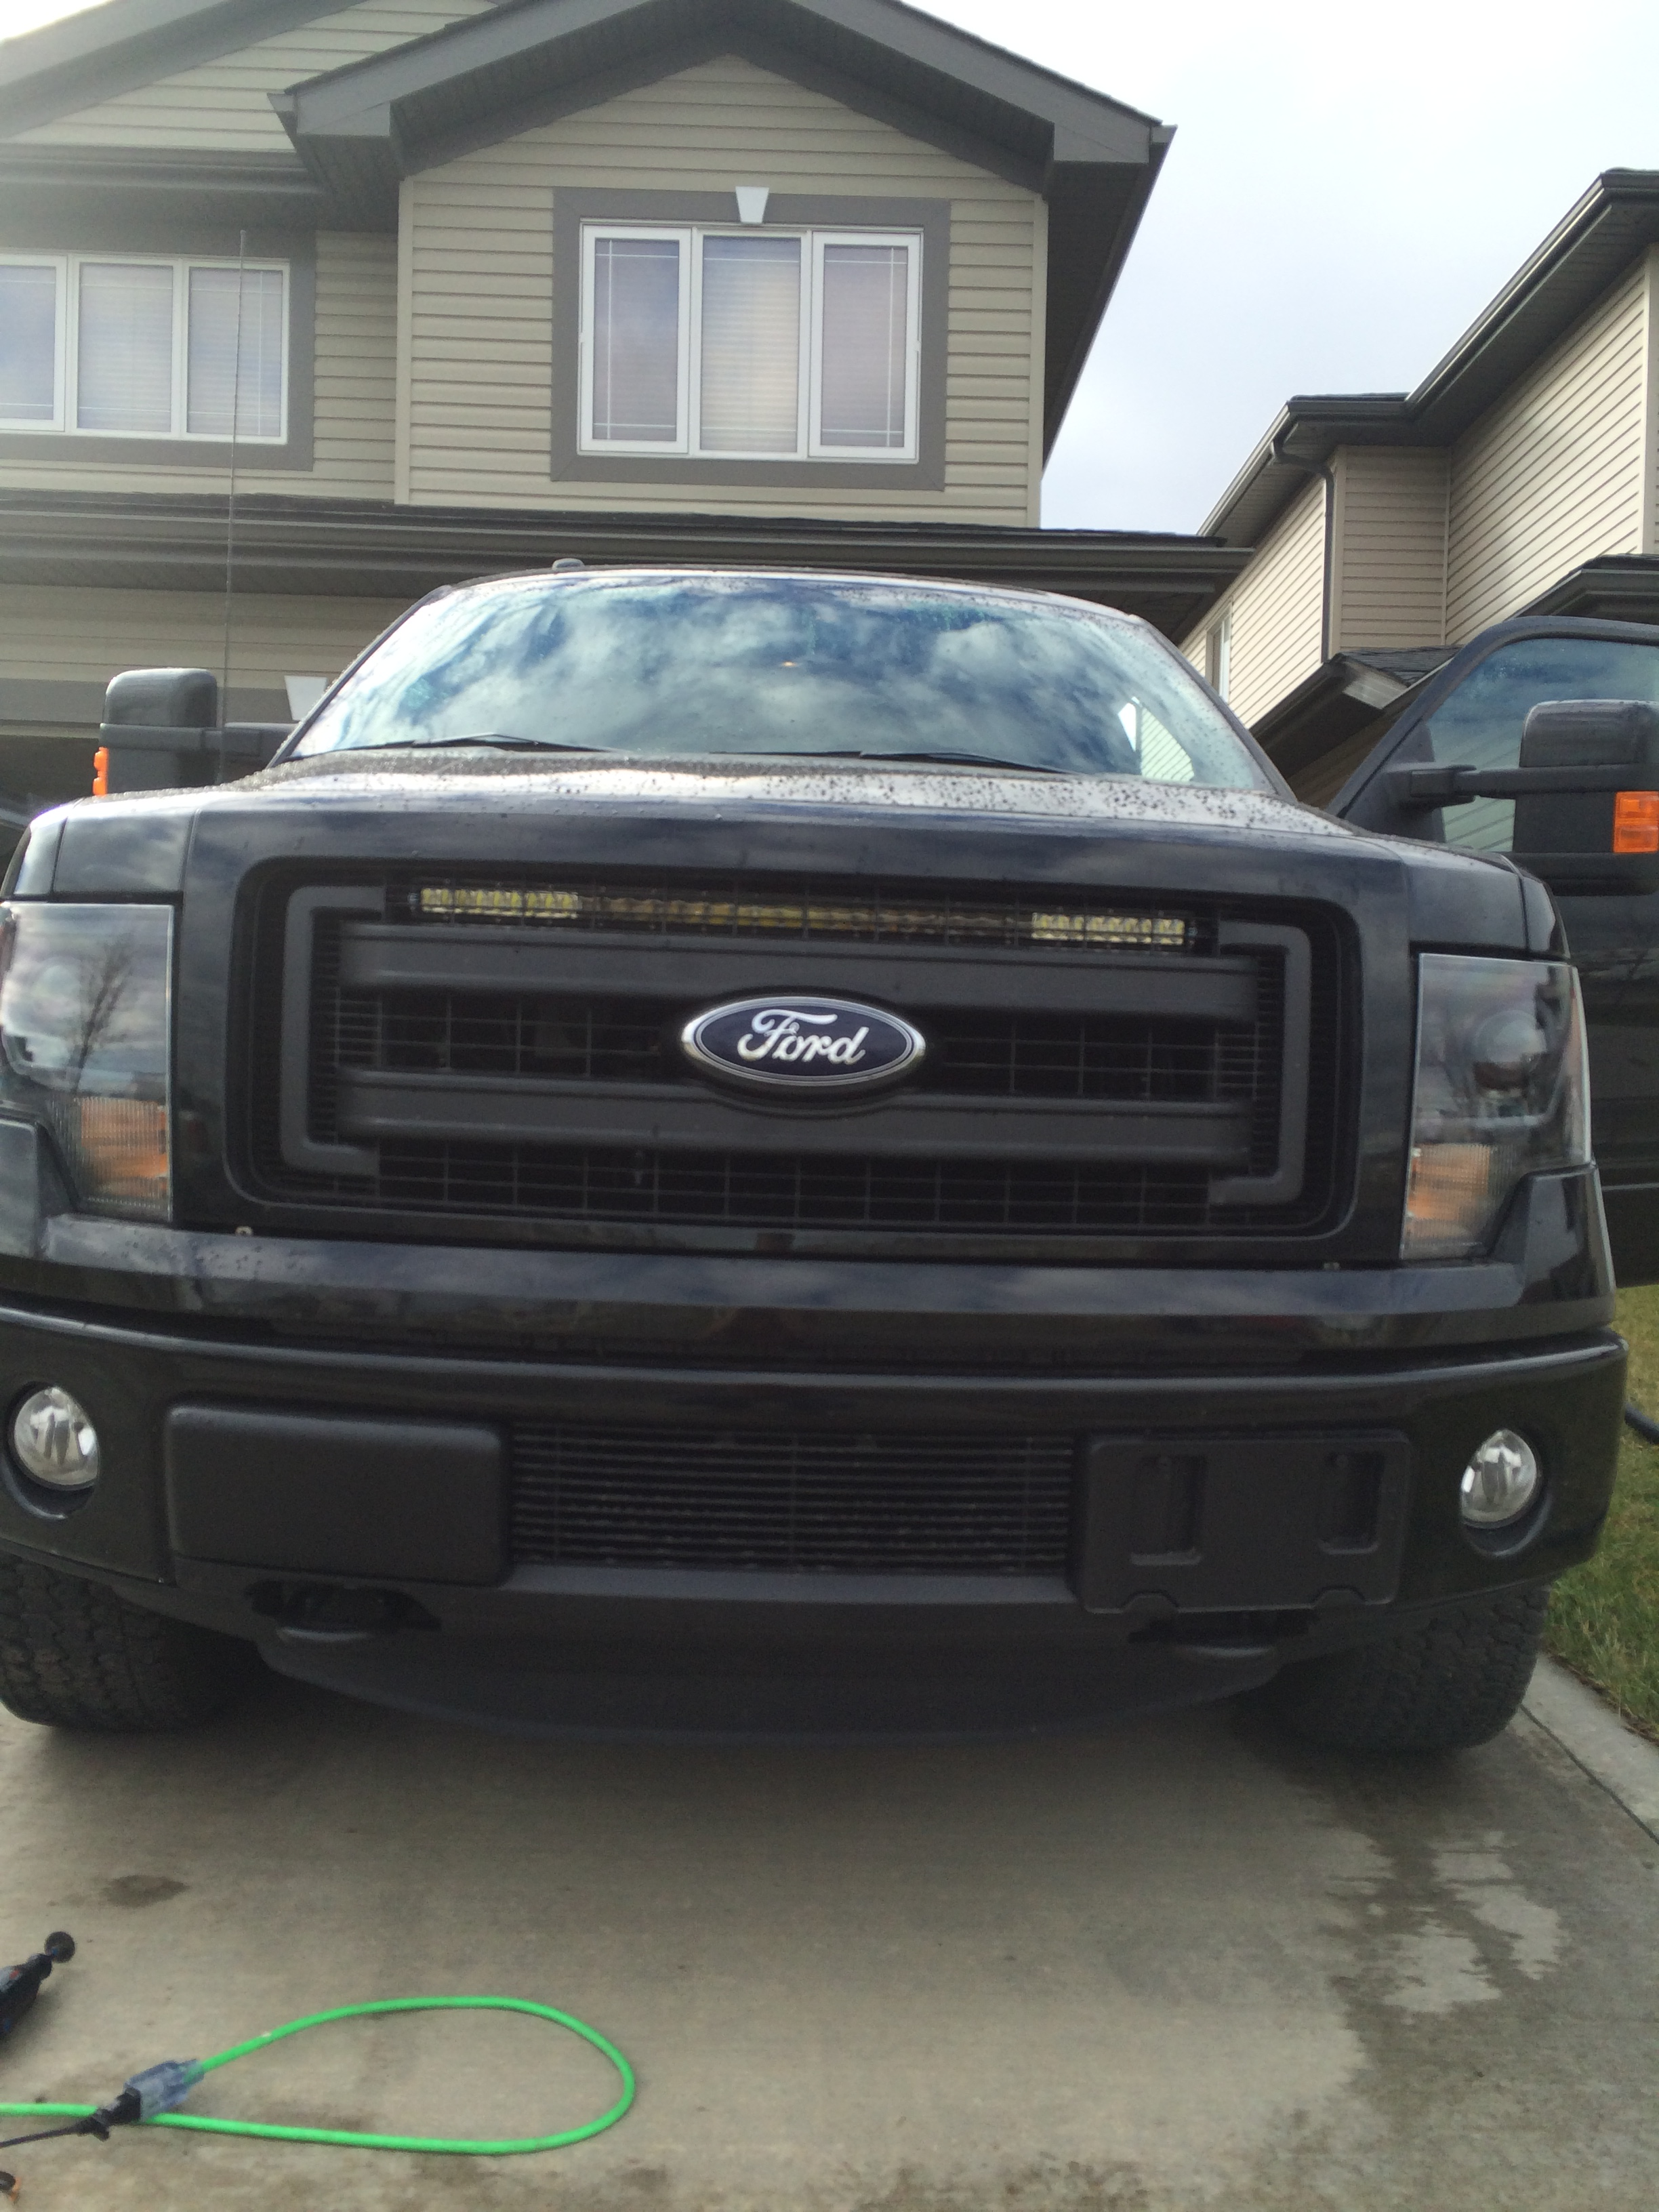 Led lightbar mounting optionslocations in 2014 lariat grille vs output name 2014 fx4 light barg views 42291 size 174 mb aloadofball Gallery